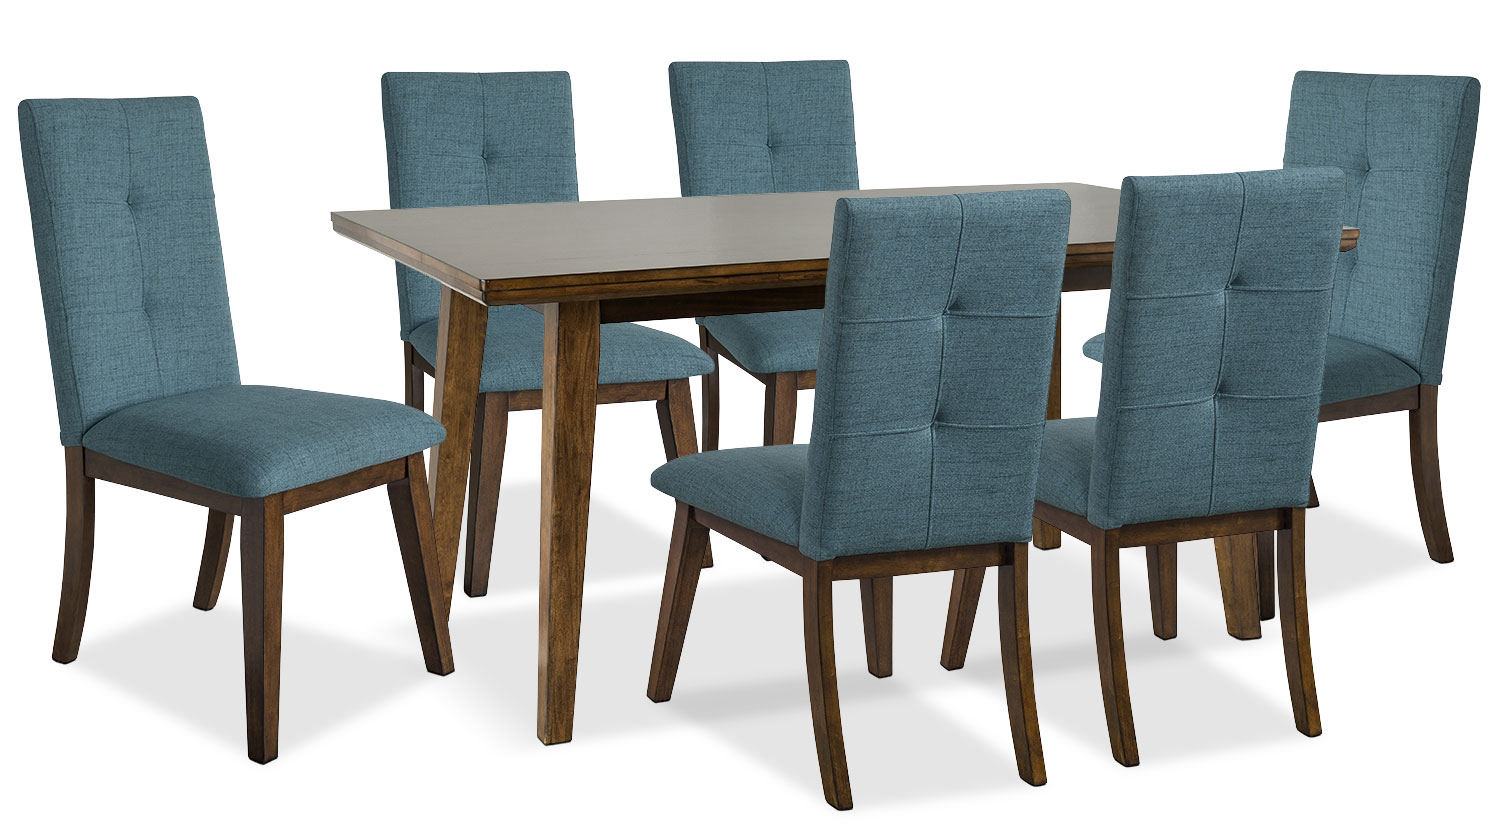 Aqua Dining Chairs Chelsea Fabric Dining Chair Aqua The Brick